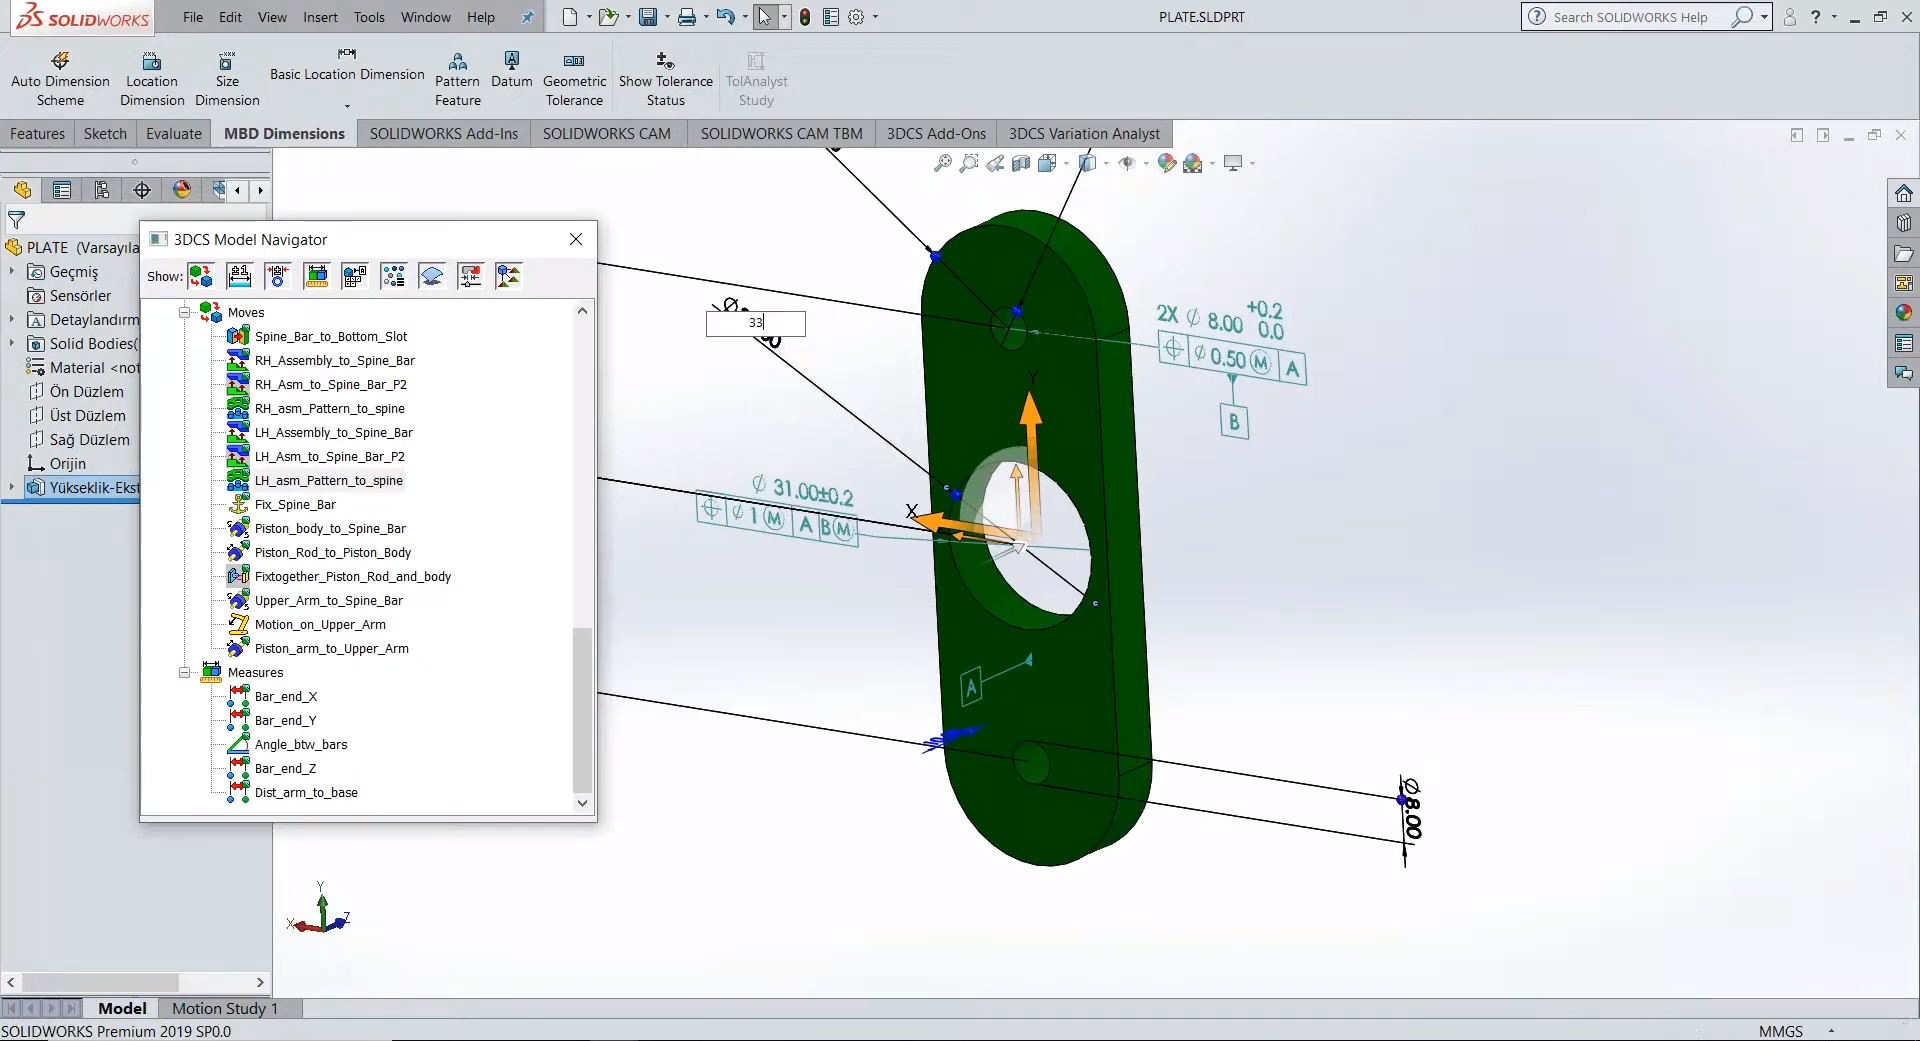 SOLIDWORKS Design Change - Increase Hole Diameter